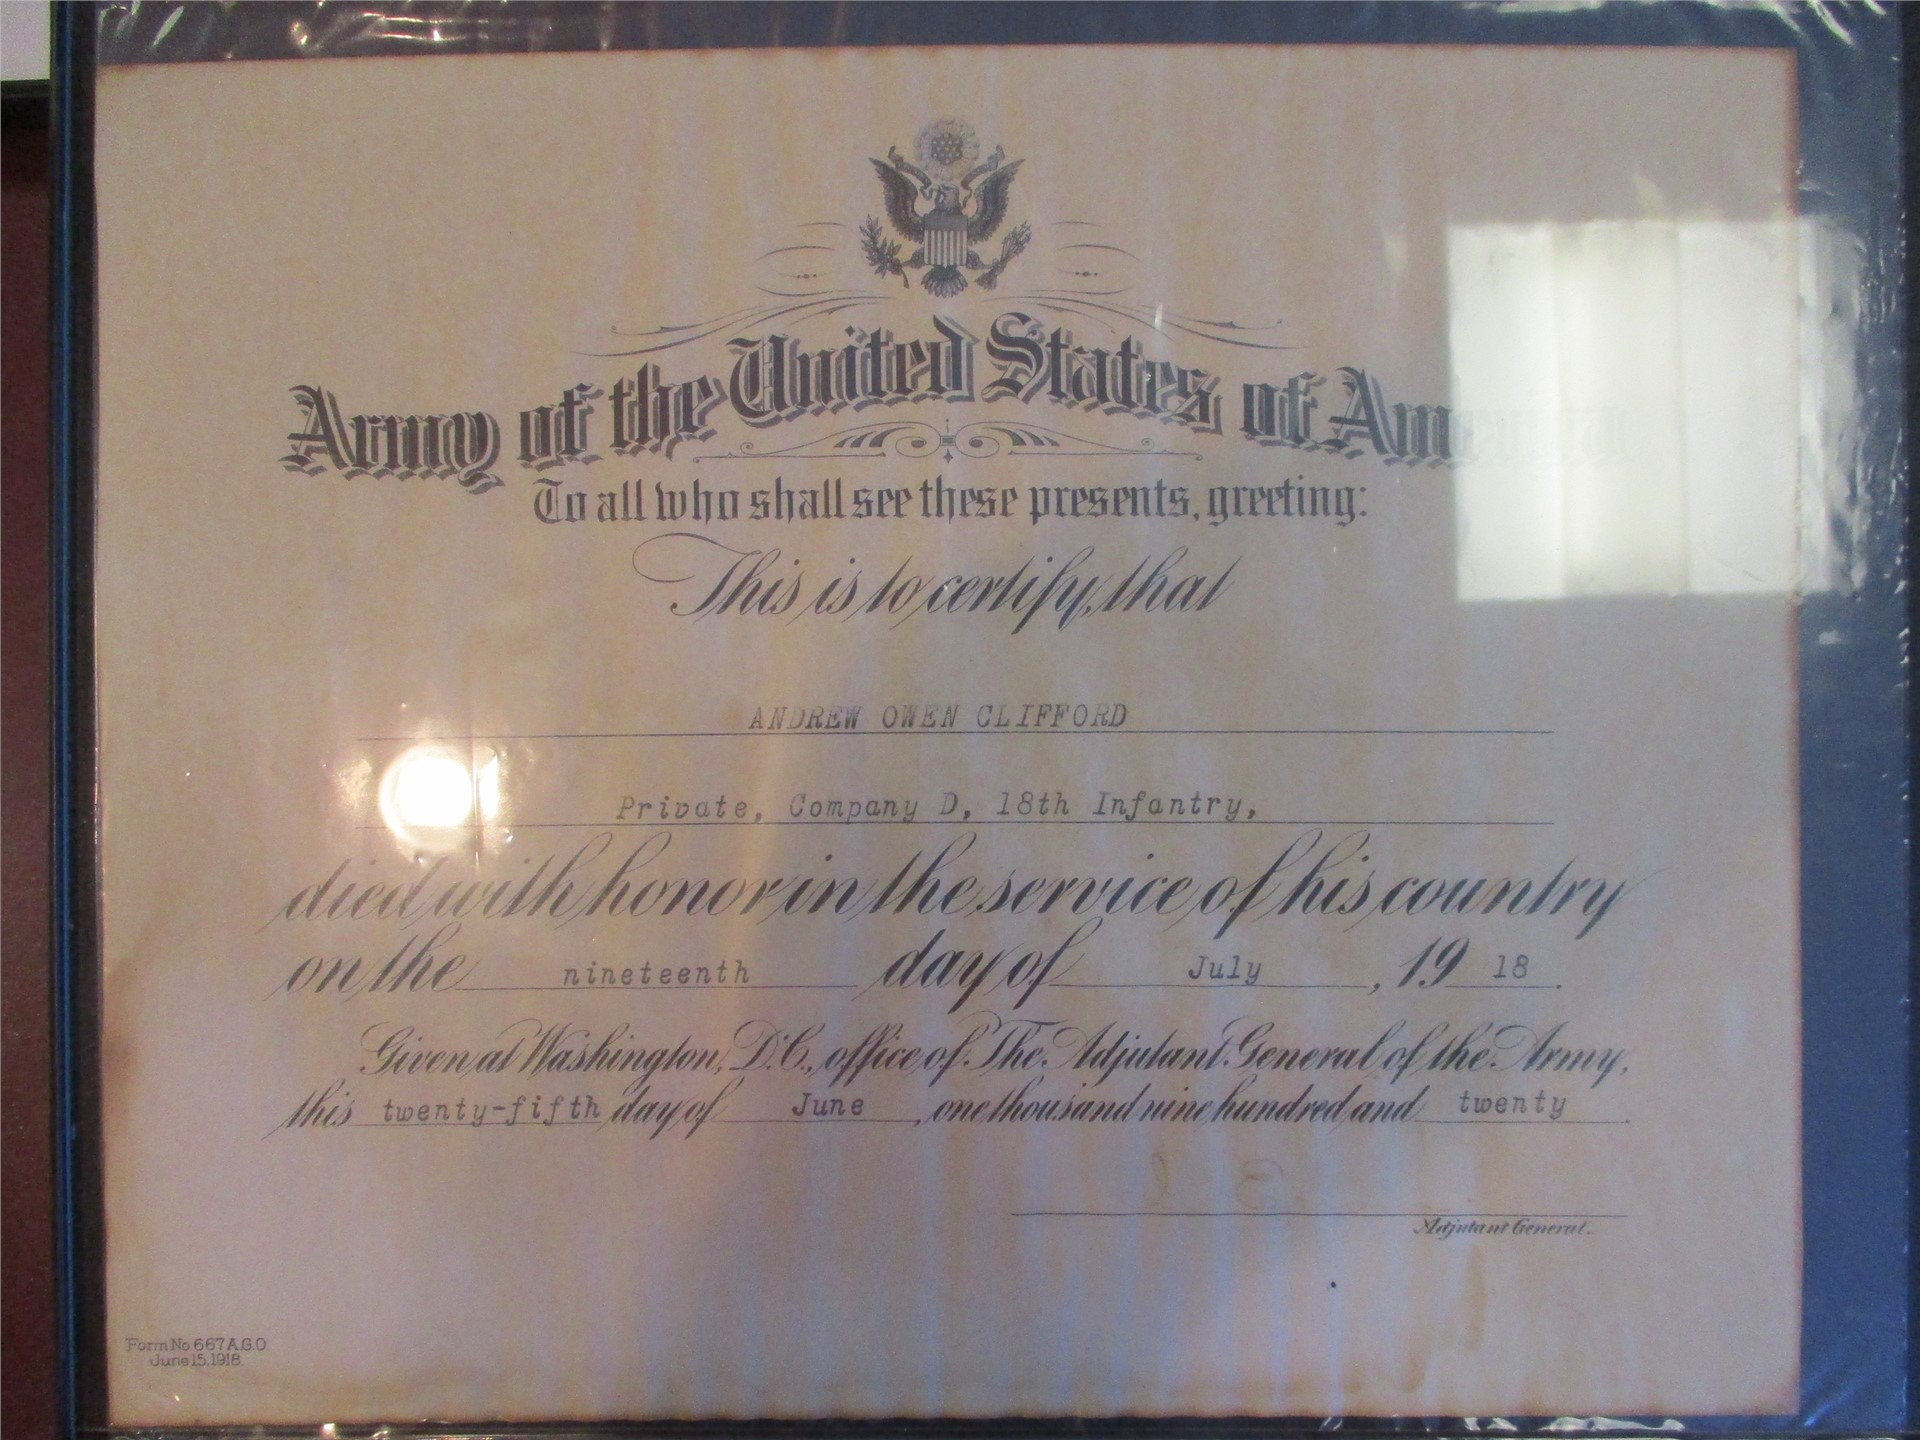 World War I exhibit: Commerative enlistment document for Afton soldier.